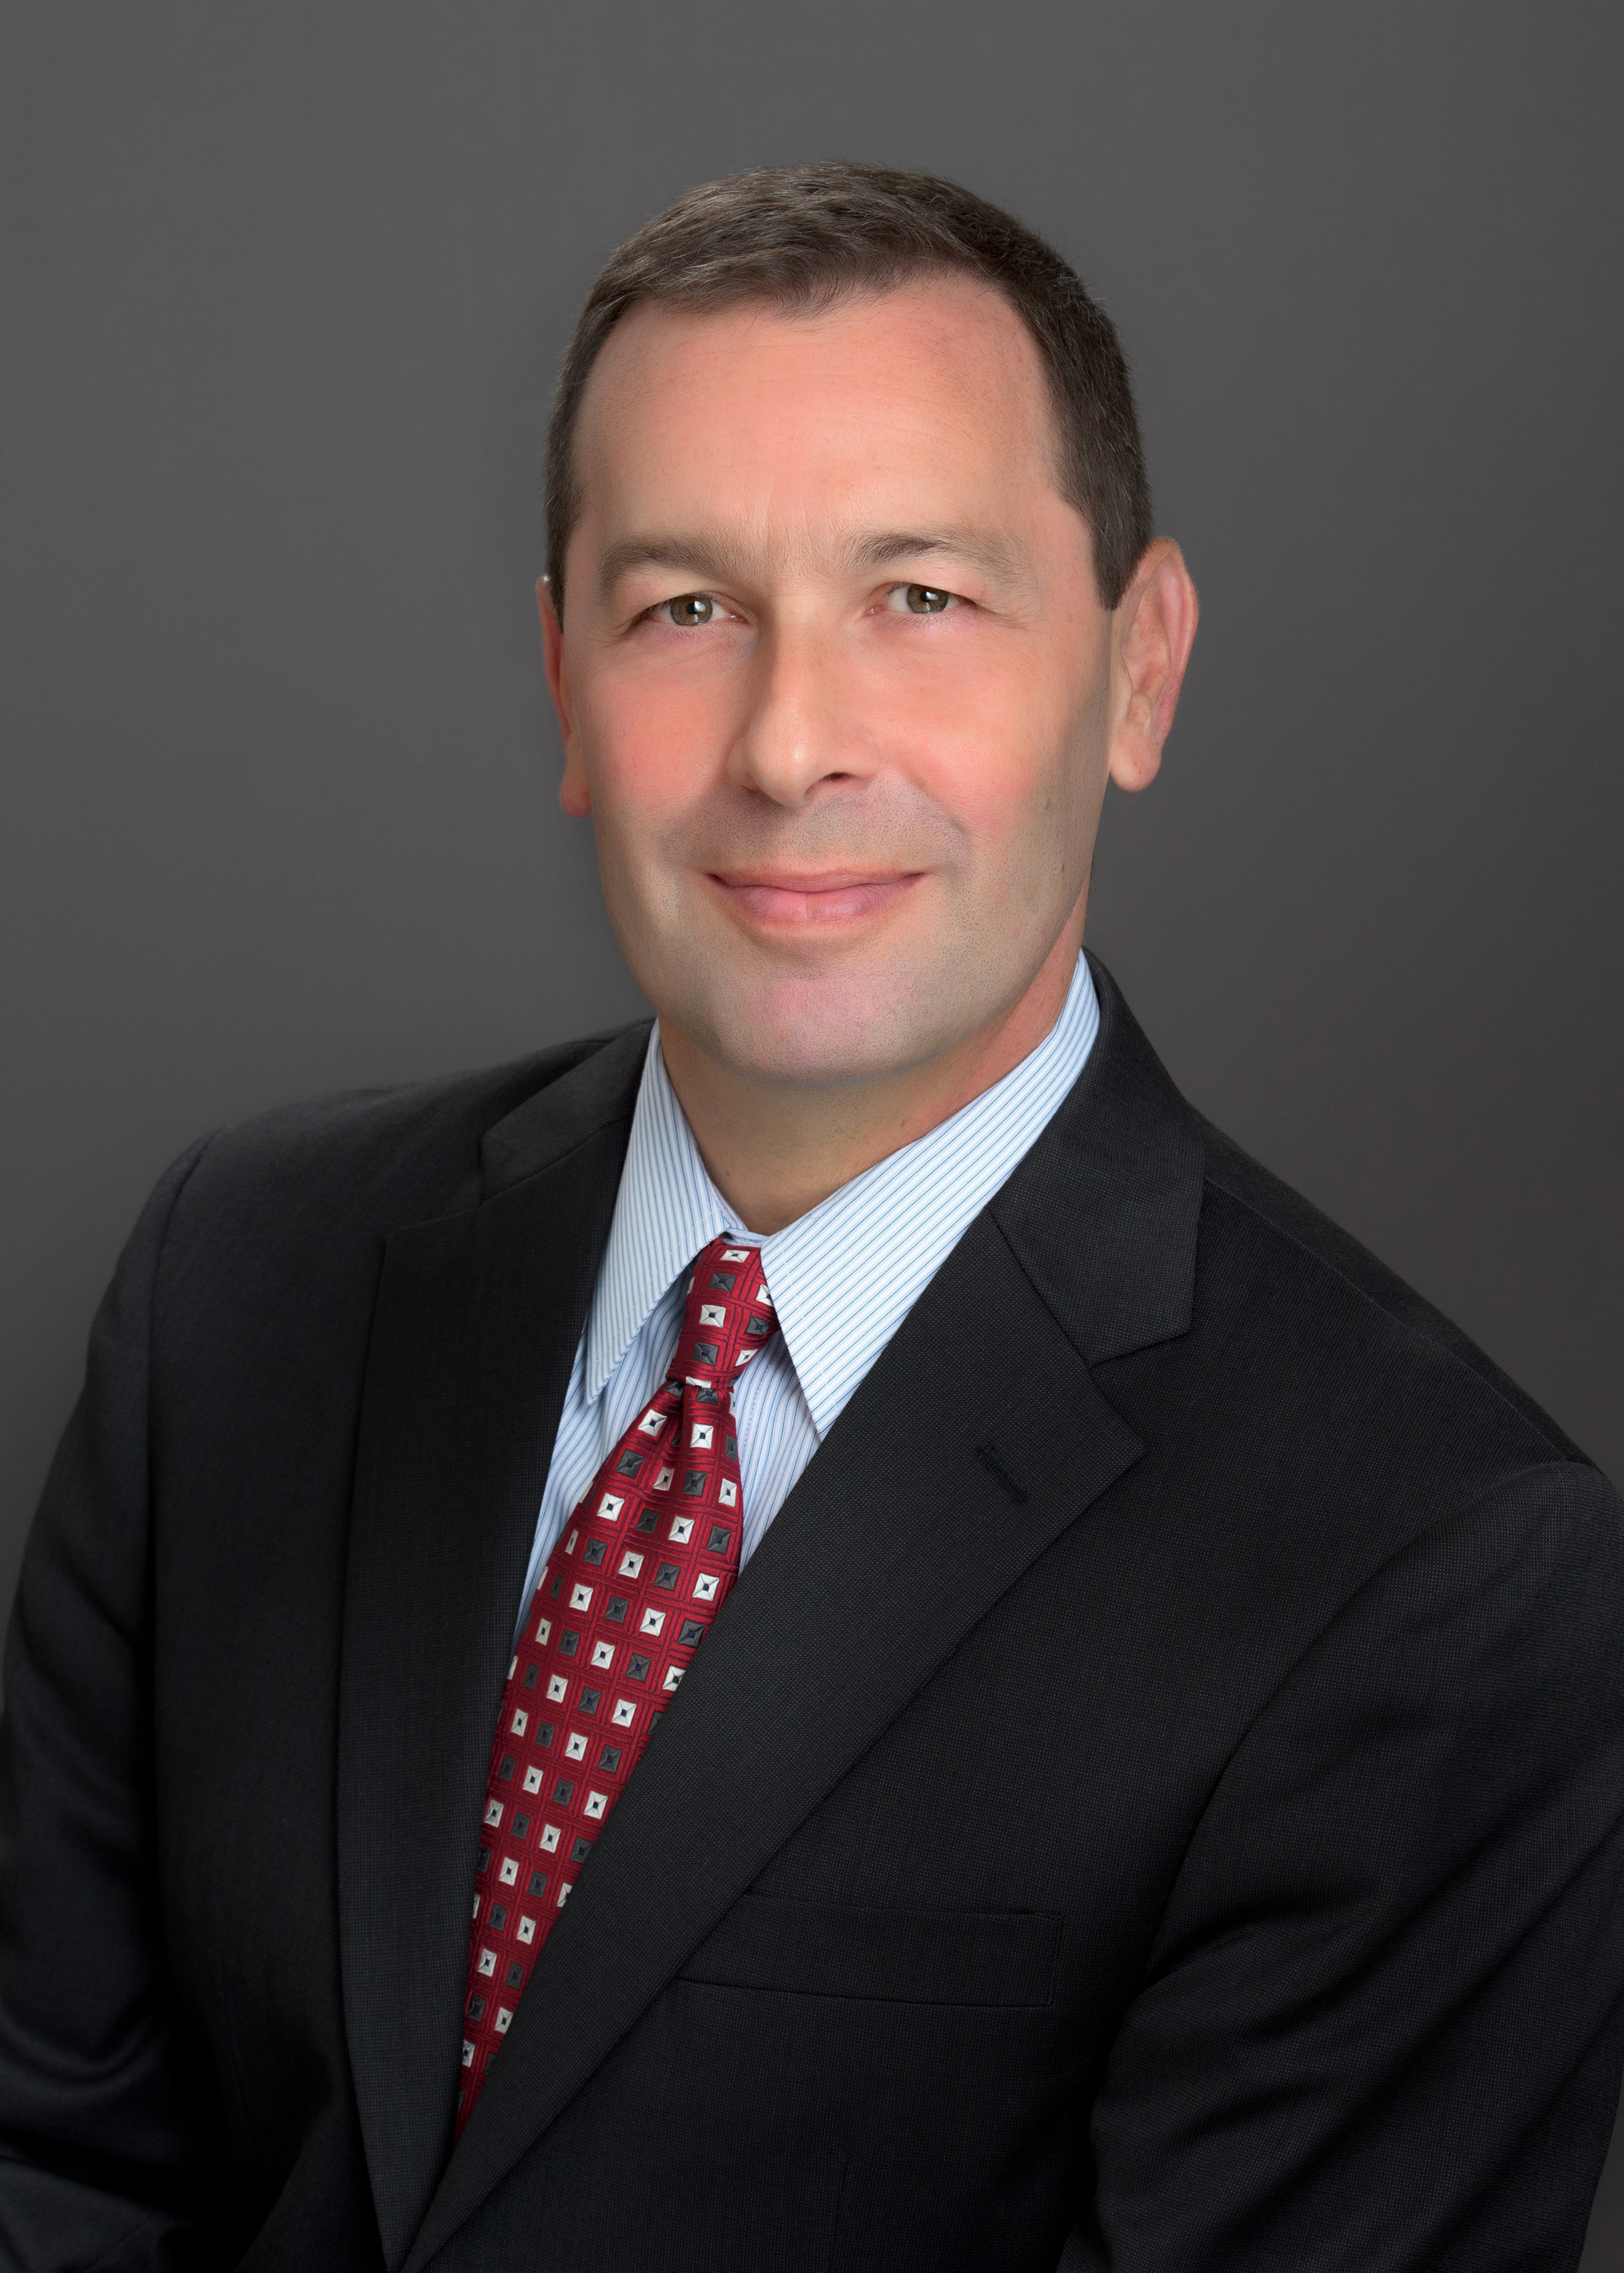 CSA Group Appoints David Weinstein as President and CEO